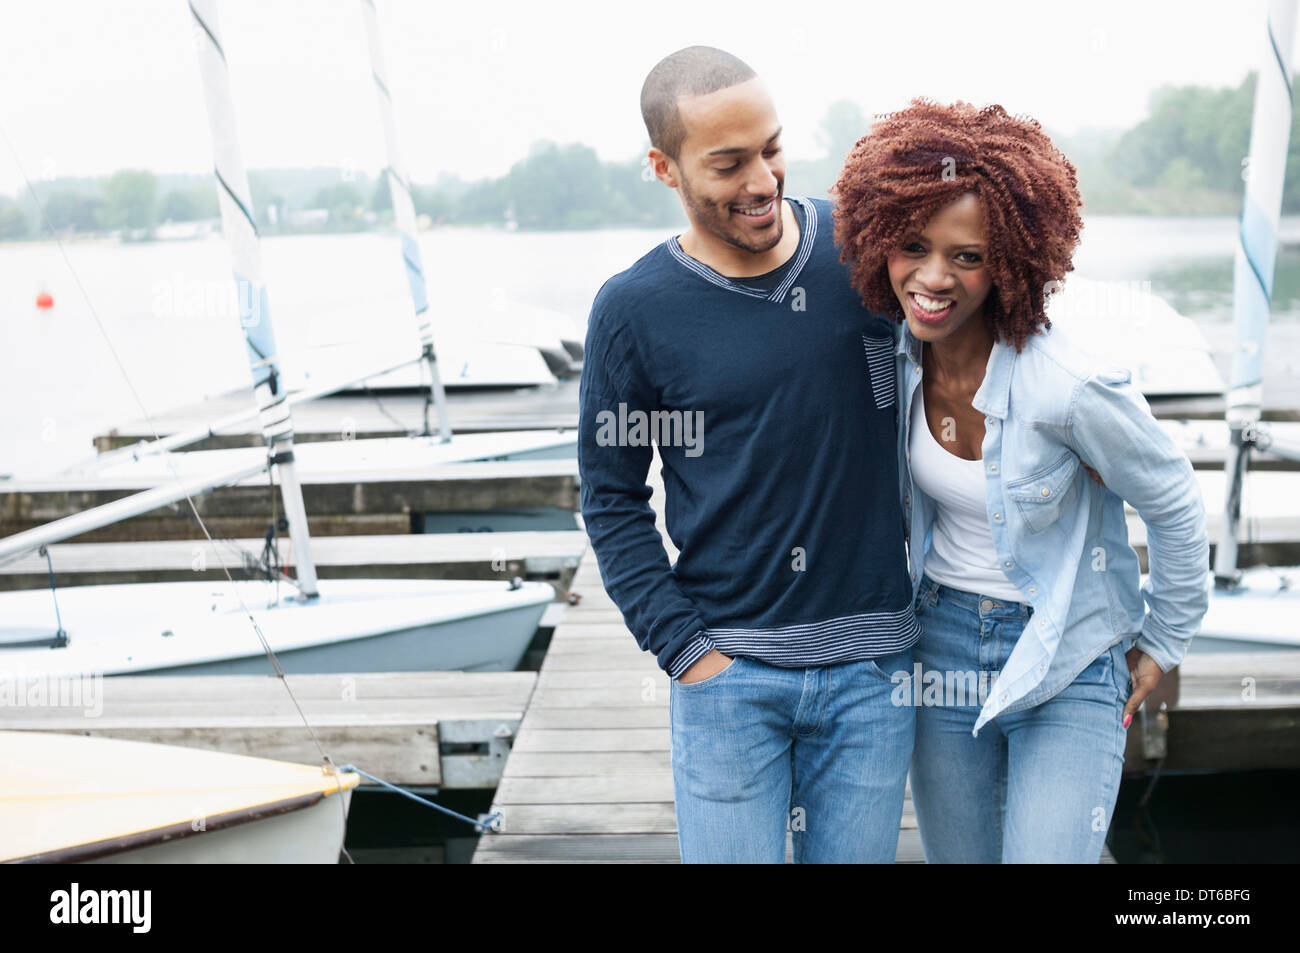 Young couple on jetty laughing - Stock Image